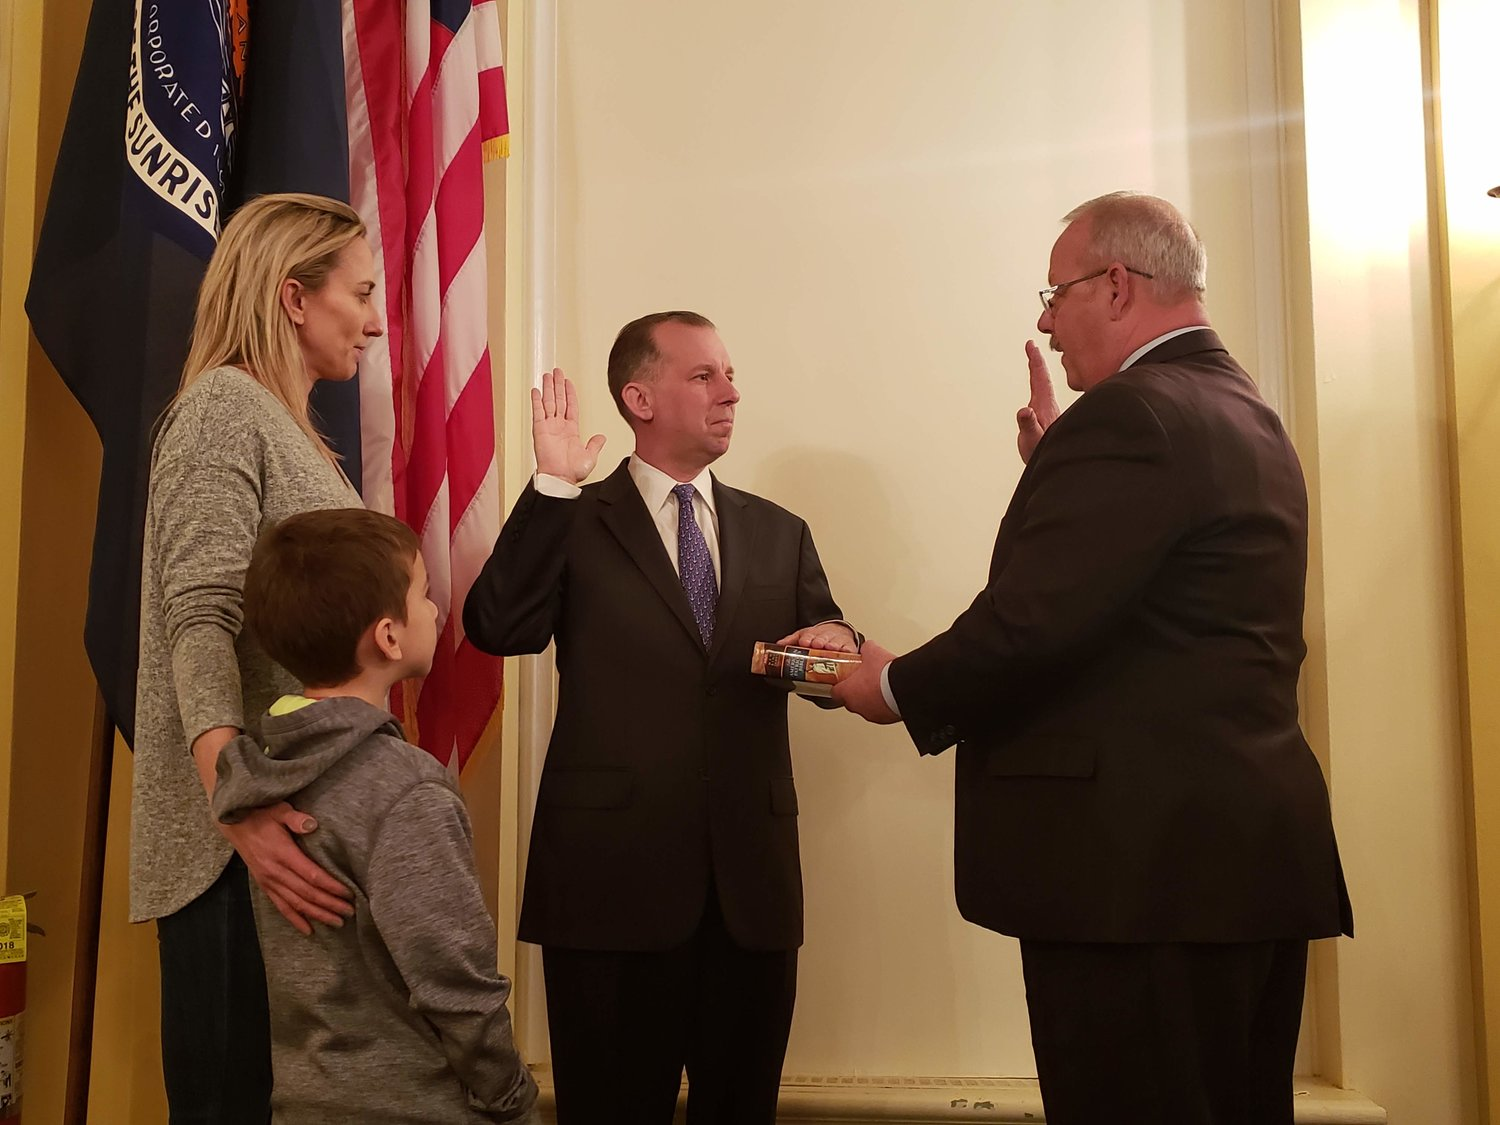 New village Trustee Chris Squeri was sworn in by Mayor Robert Kennedy on April 1. He was joined by his wife and son.